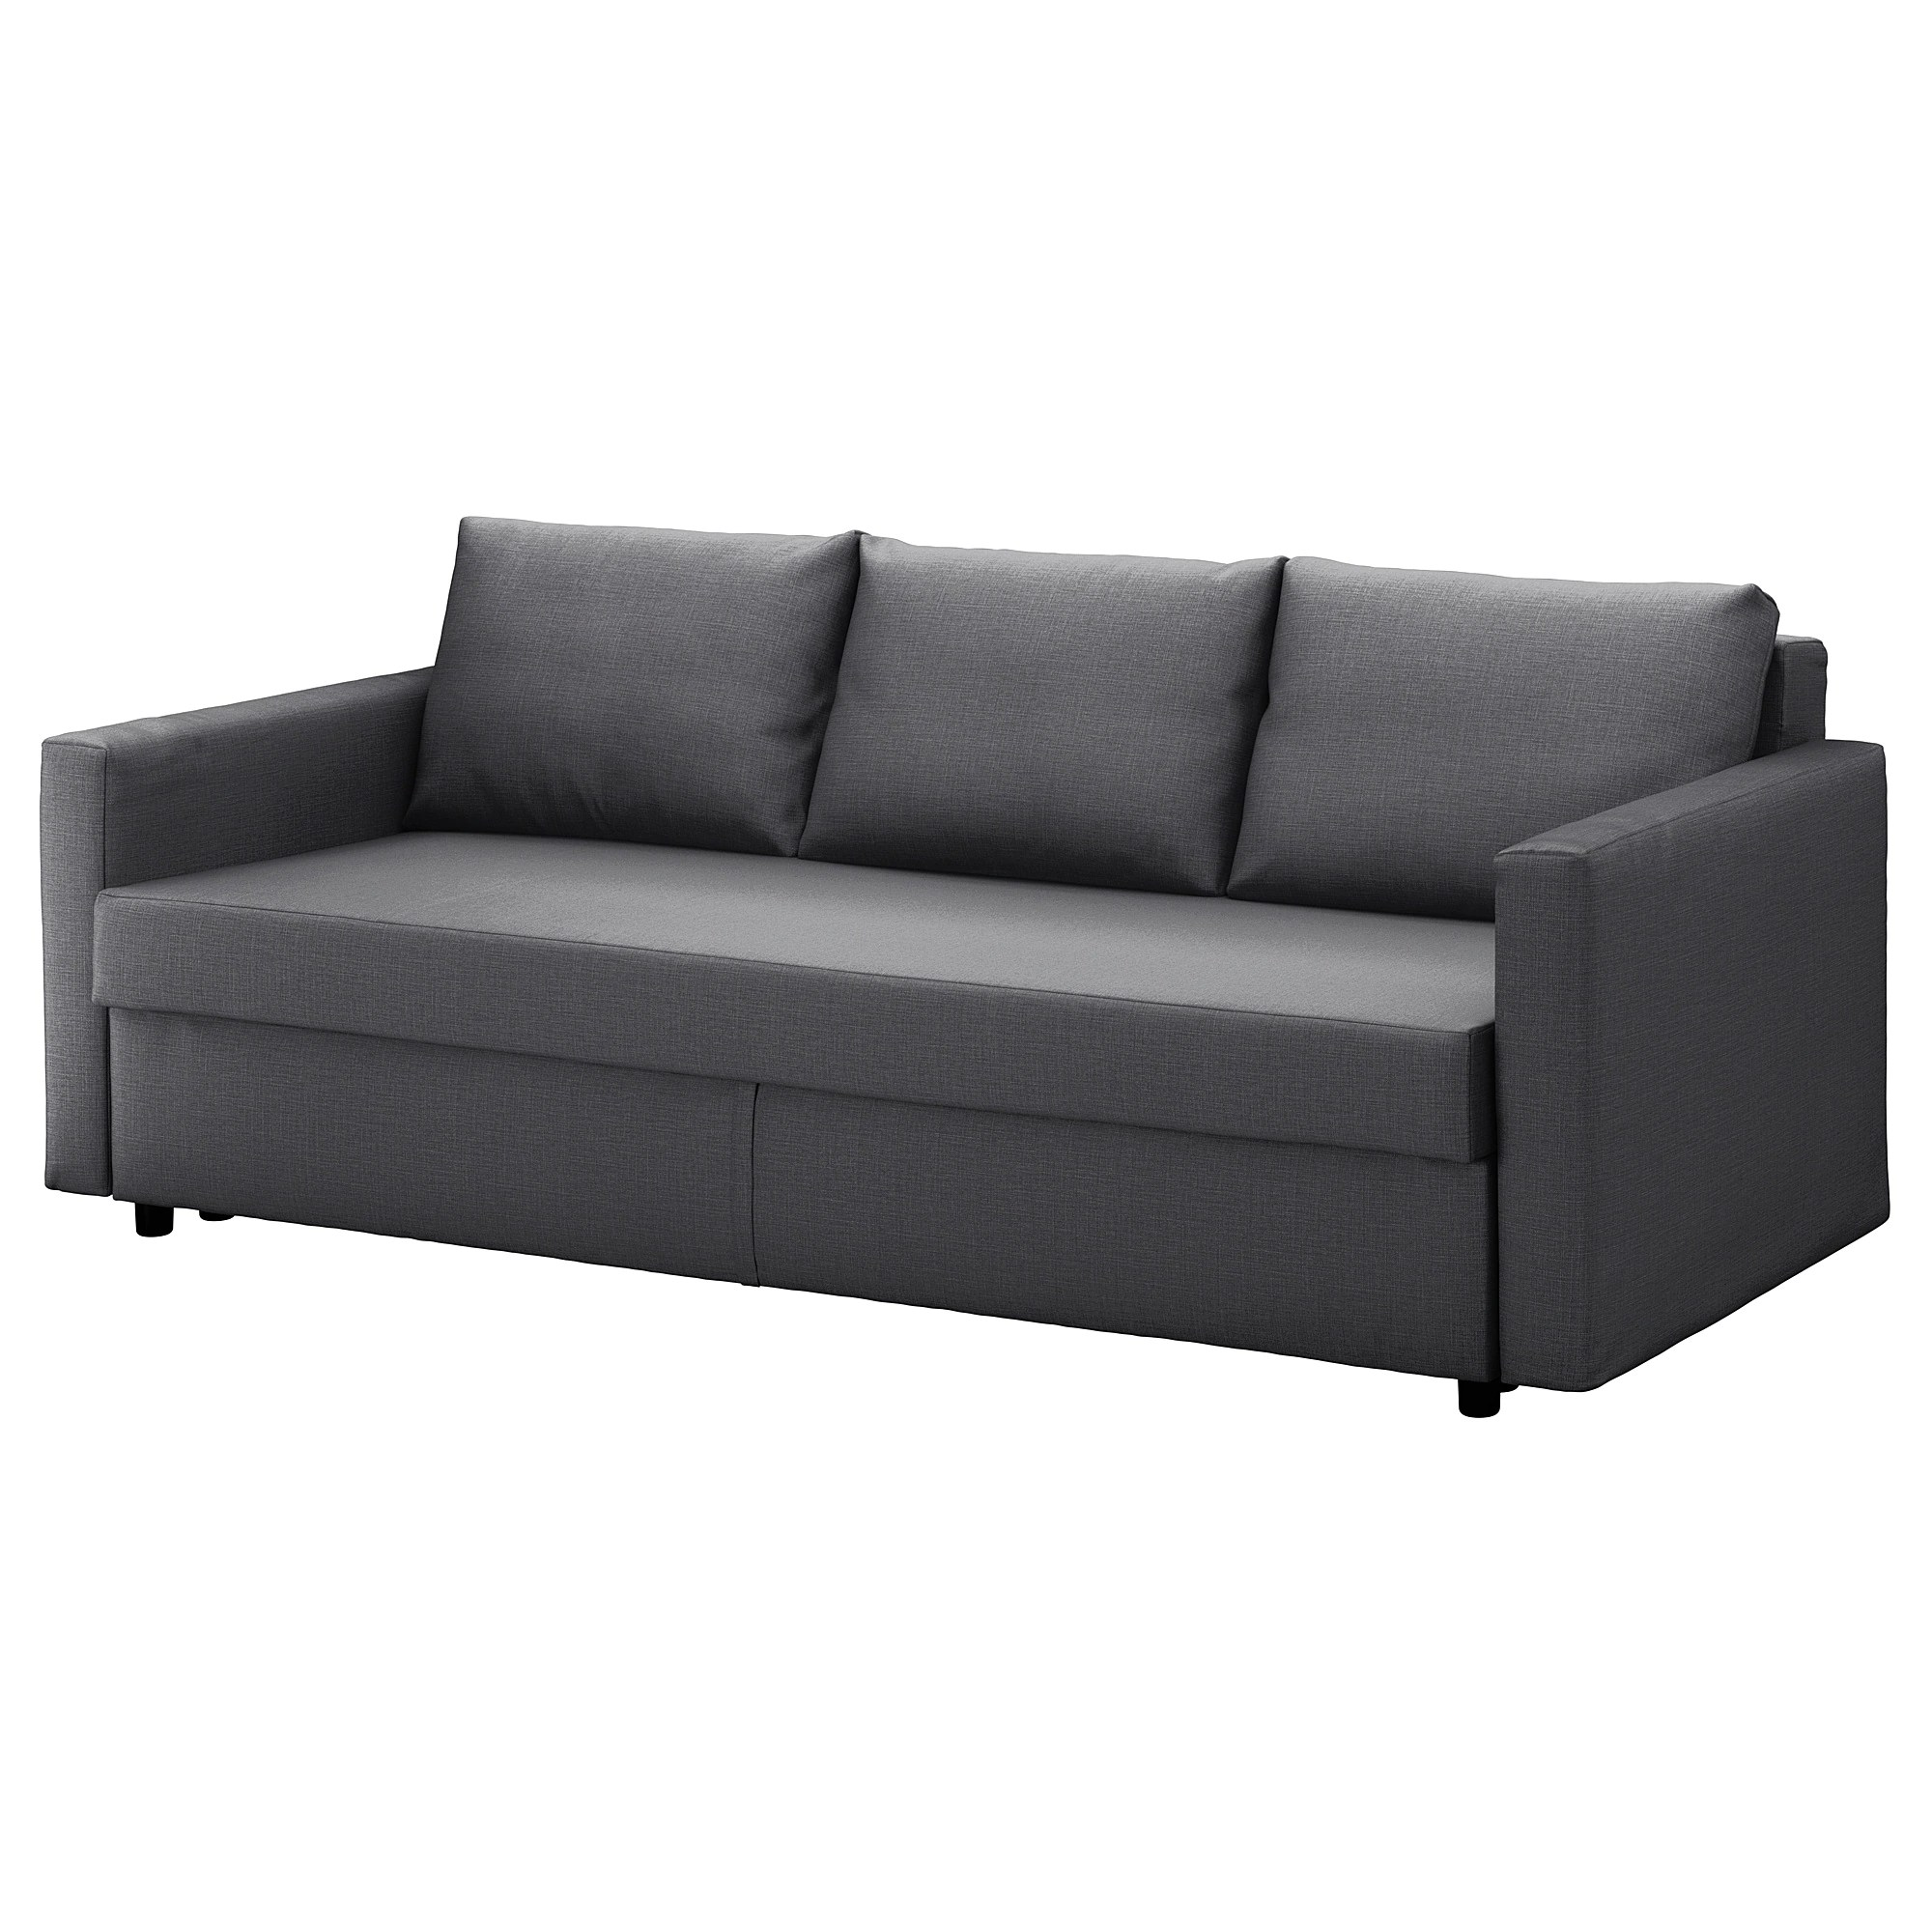 Sofa Ikea Friheten Sleeper Sofa Skiftebo Dark Gray